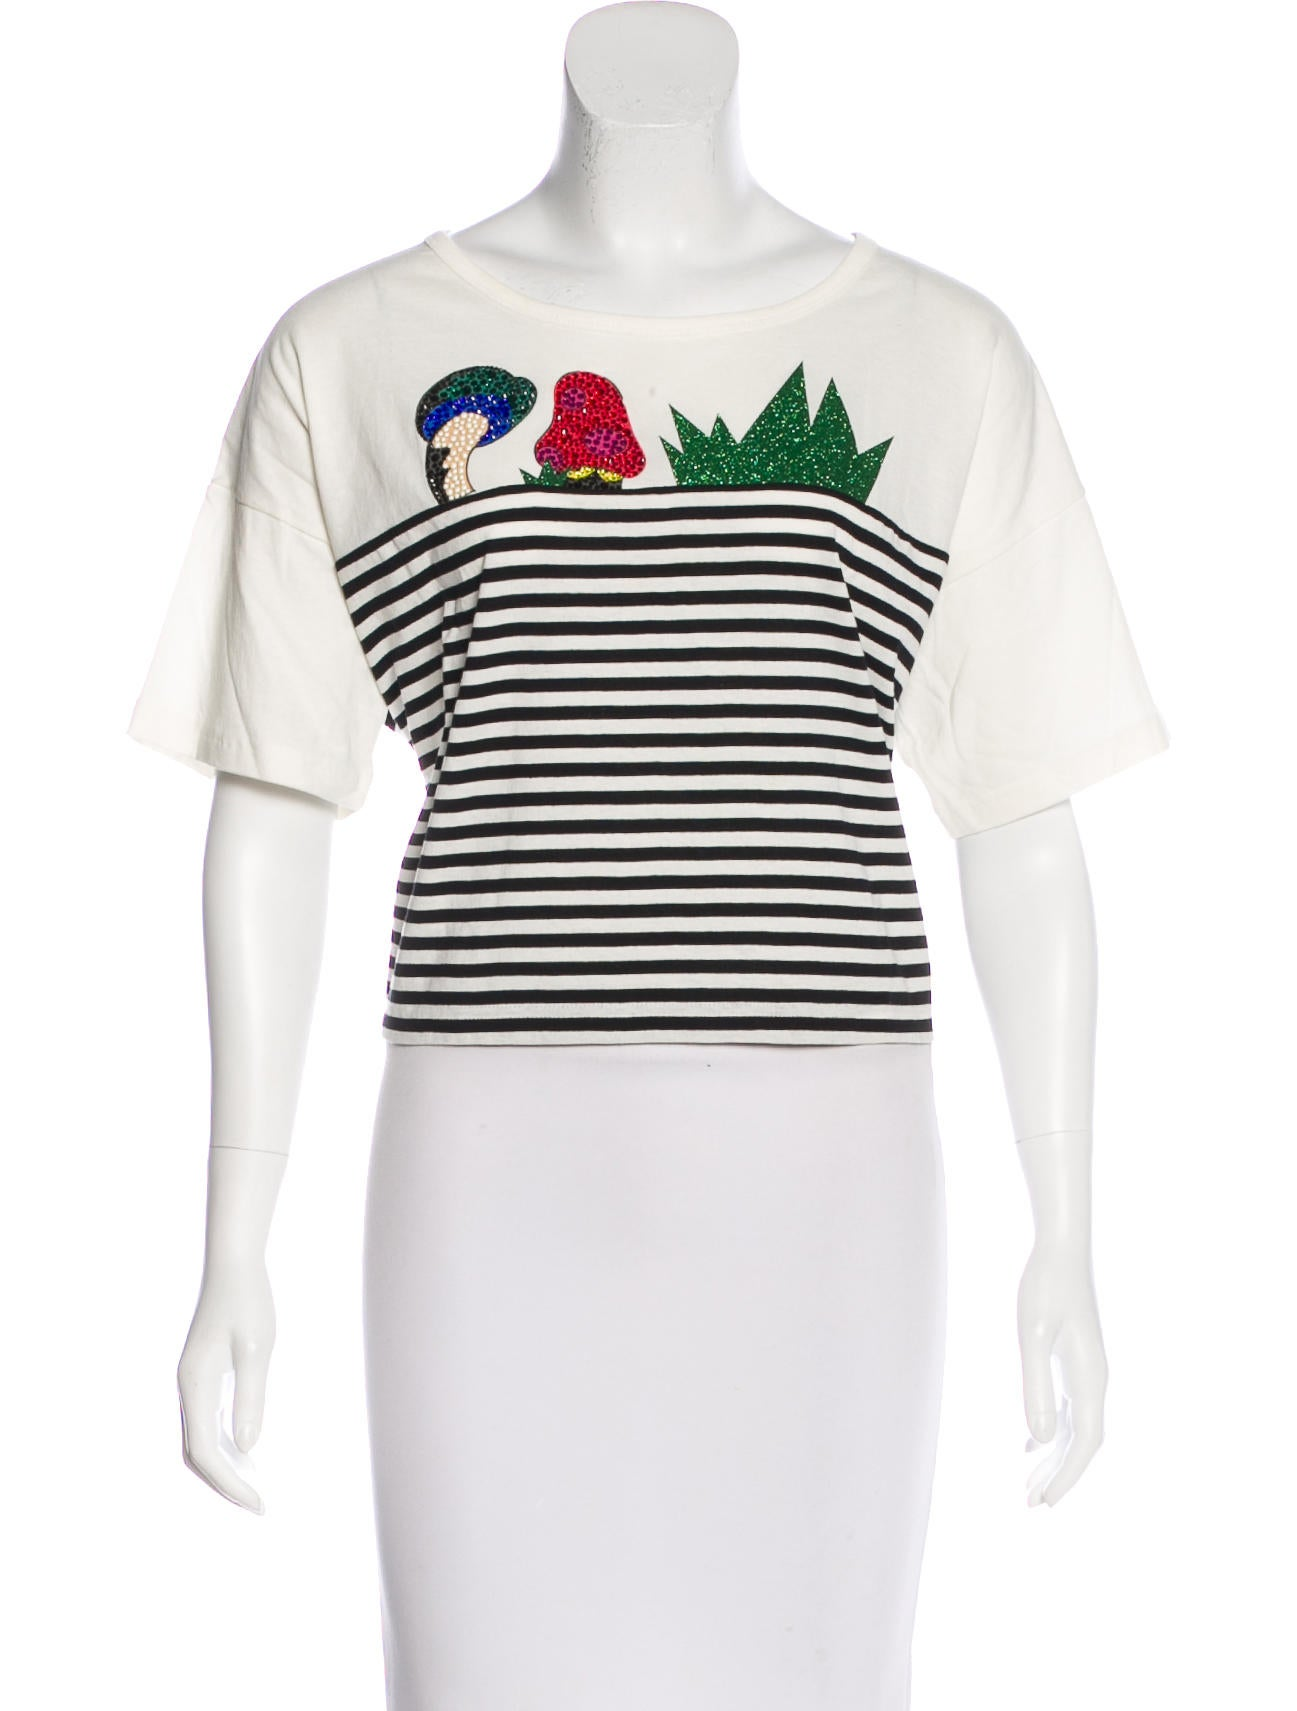 3aa55365 Marc Jacobs Striped Short Sleeve Top - Clothing - MAR50787   The ...